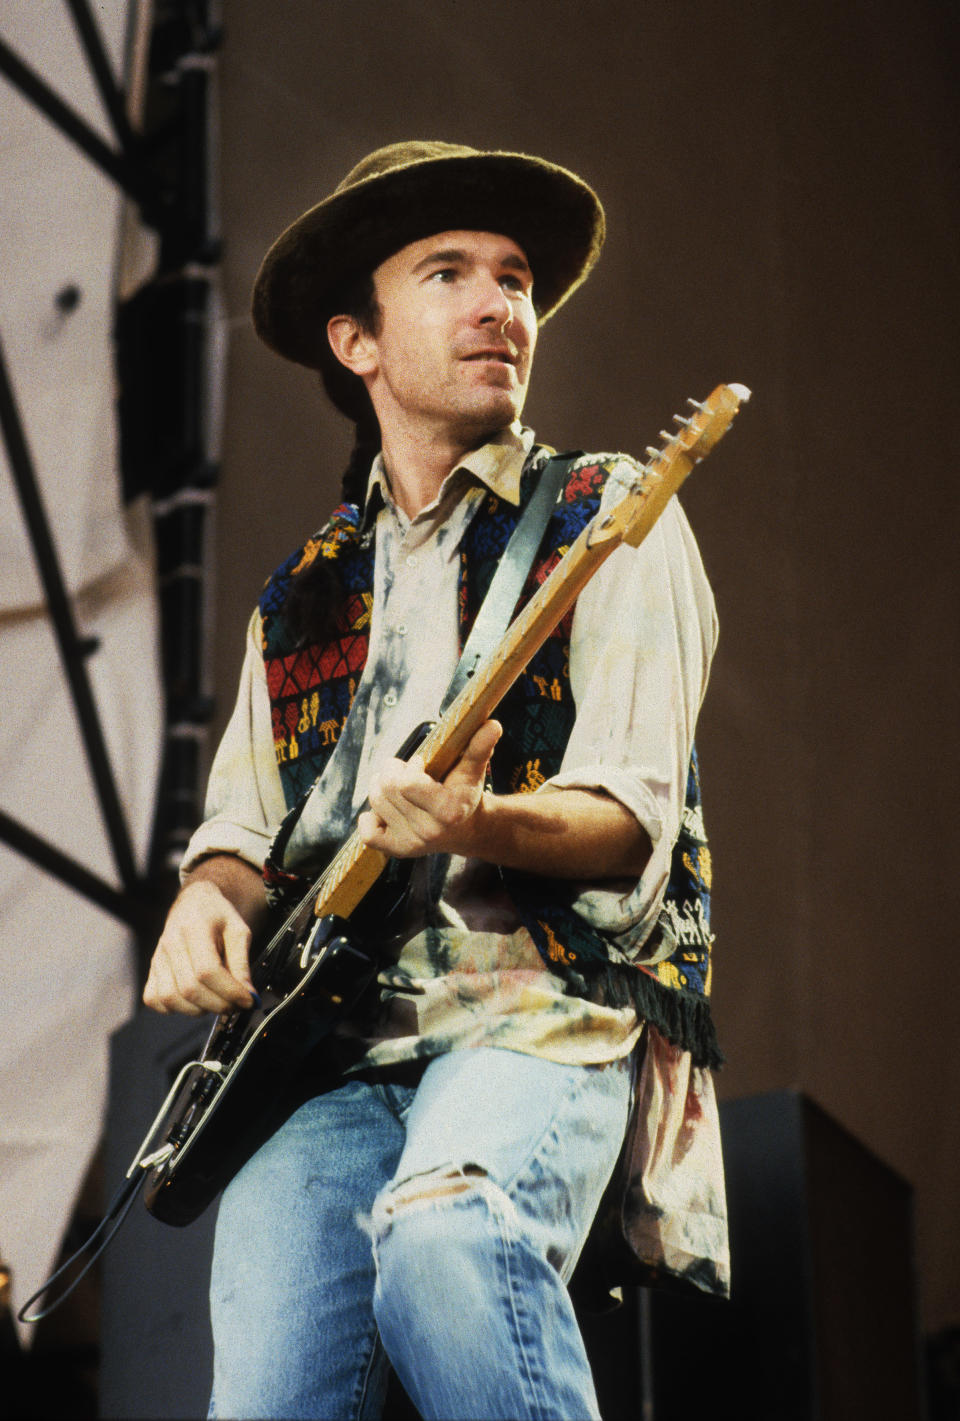 ROTTERDAM, NETHERLANDS - 11th JULY: guitarist The Edge from Irish rock band U2 performs live on stage at Feyenoord Stadion, De Kuip in Rotterdam during the Joshua Tree tour on 11th July 1987. (Photo by Rob Verhorst/Redferns)